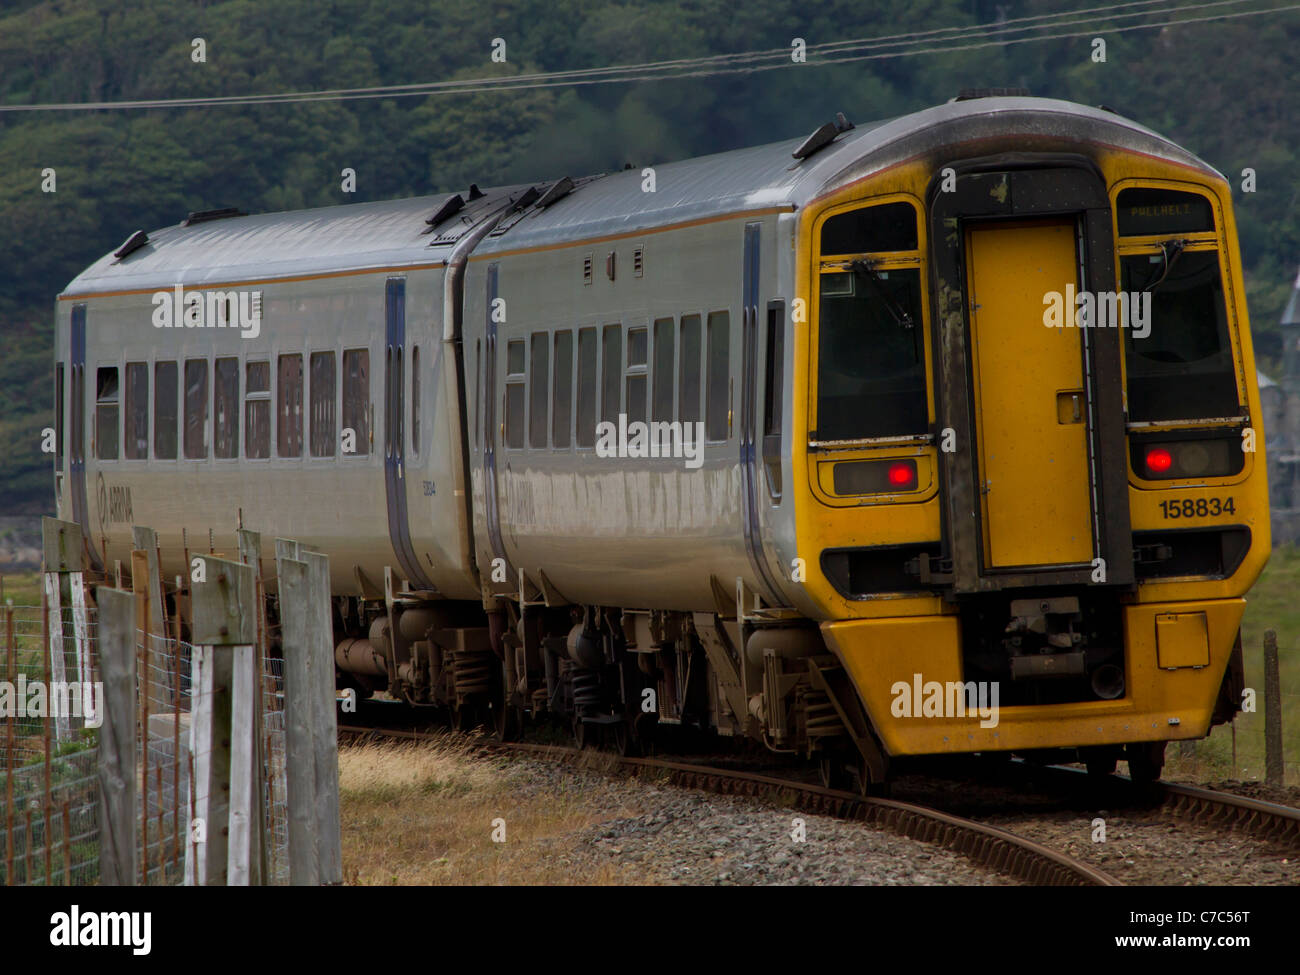 A multiple unit on a rural branch line. - Stock Image